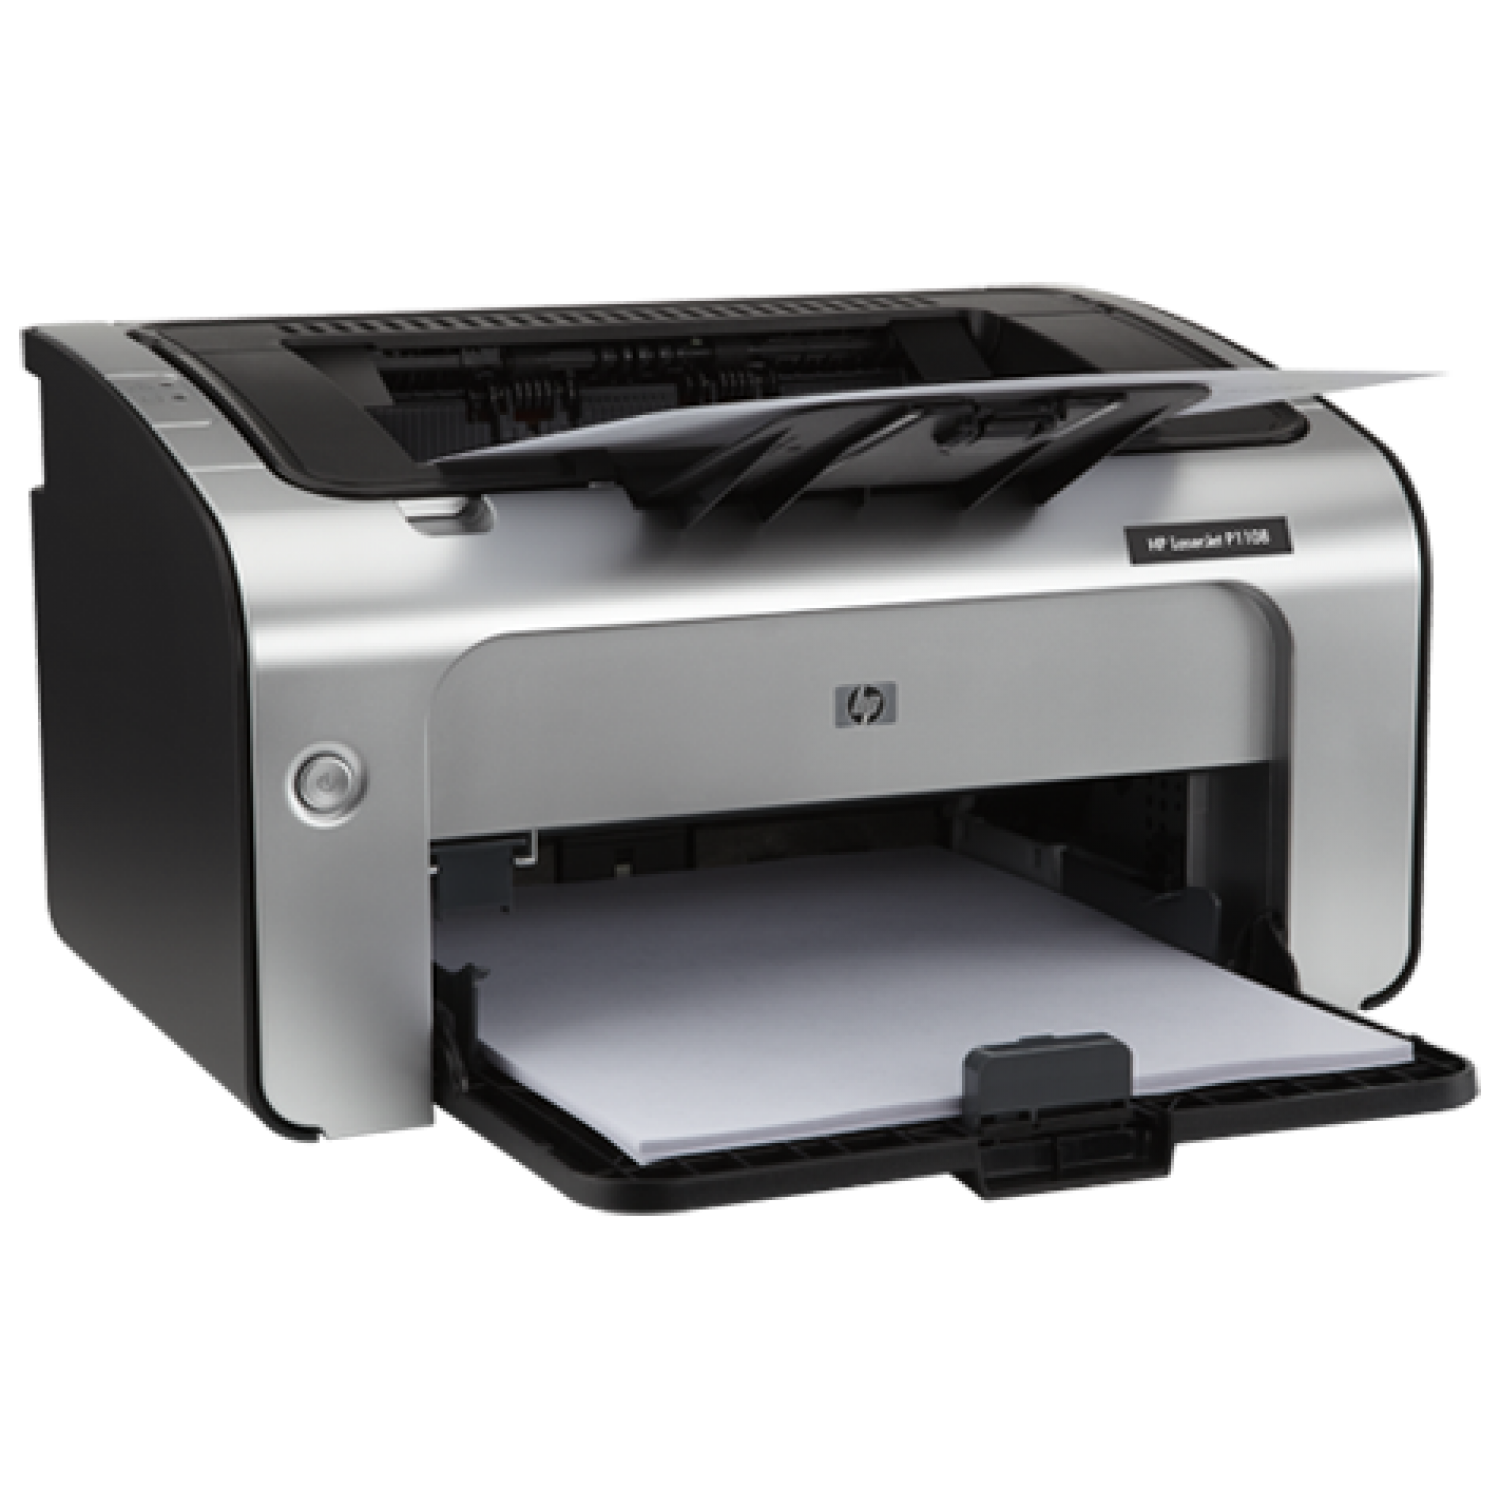 Print clipart laser printer. Printers are taking over